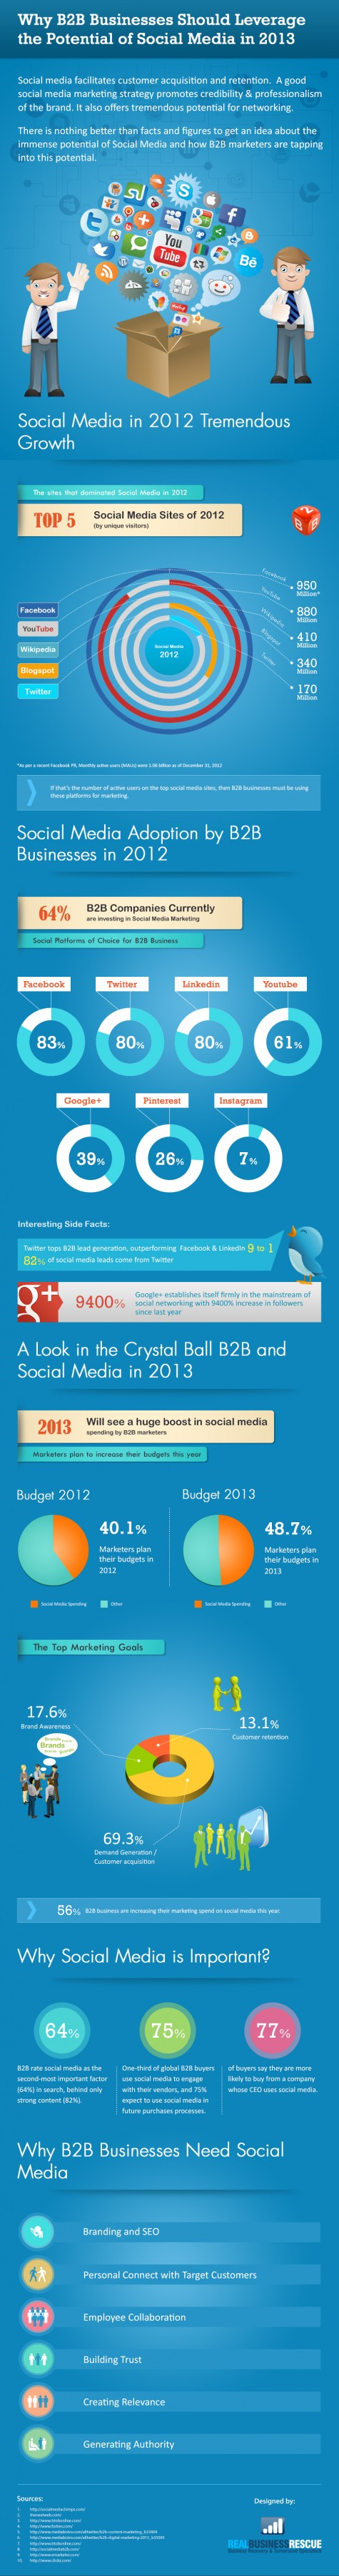 Why B2B business should leverage the potential of Social media